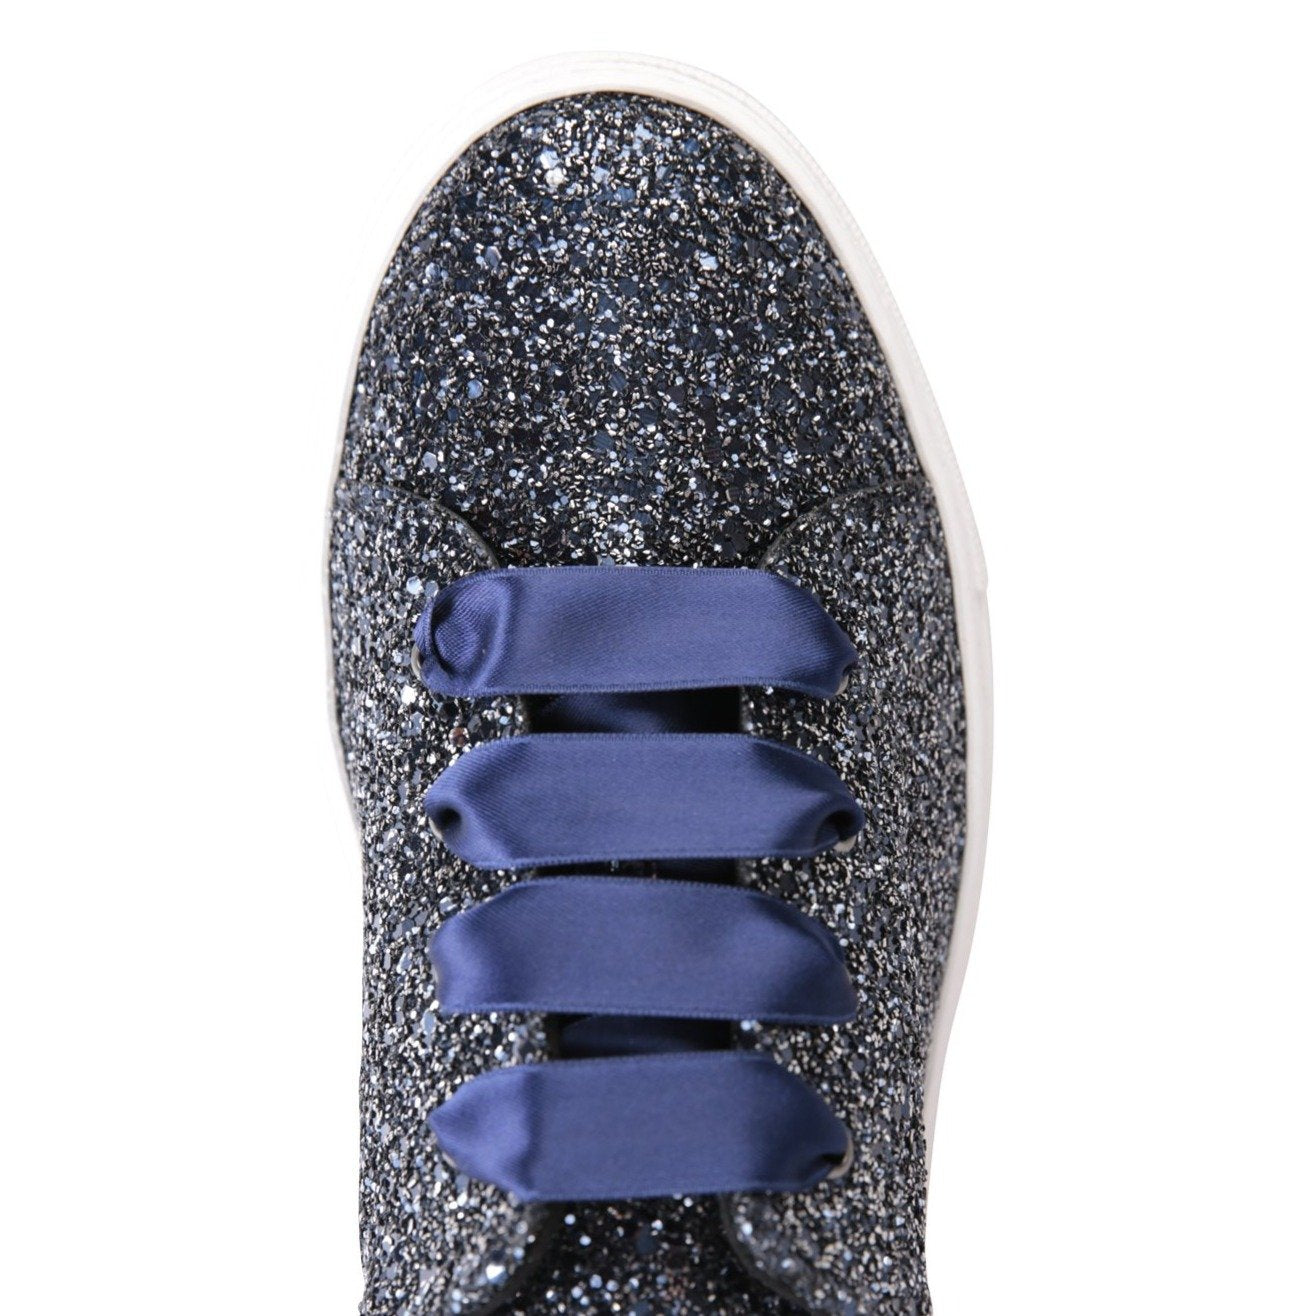 GROSSETO - Glitter Midnight, VIAJIYU - Women's Hand Made Sustainable Luxury Shoes. Made in Italy. Made to Order.